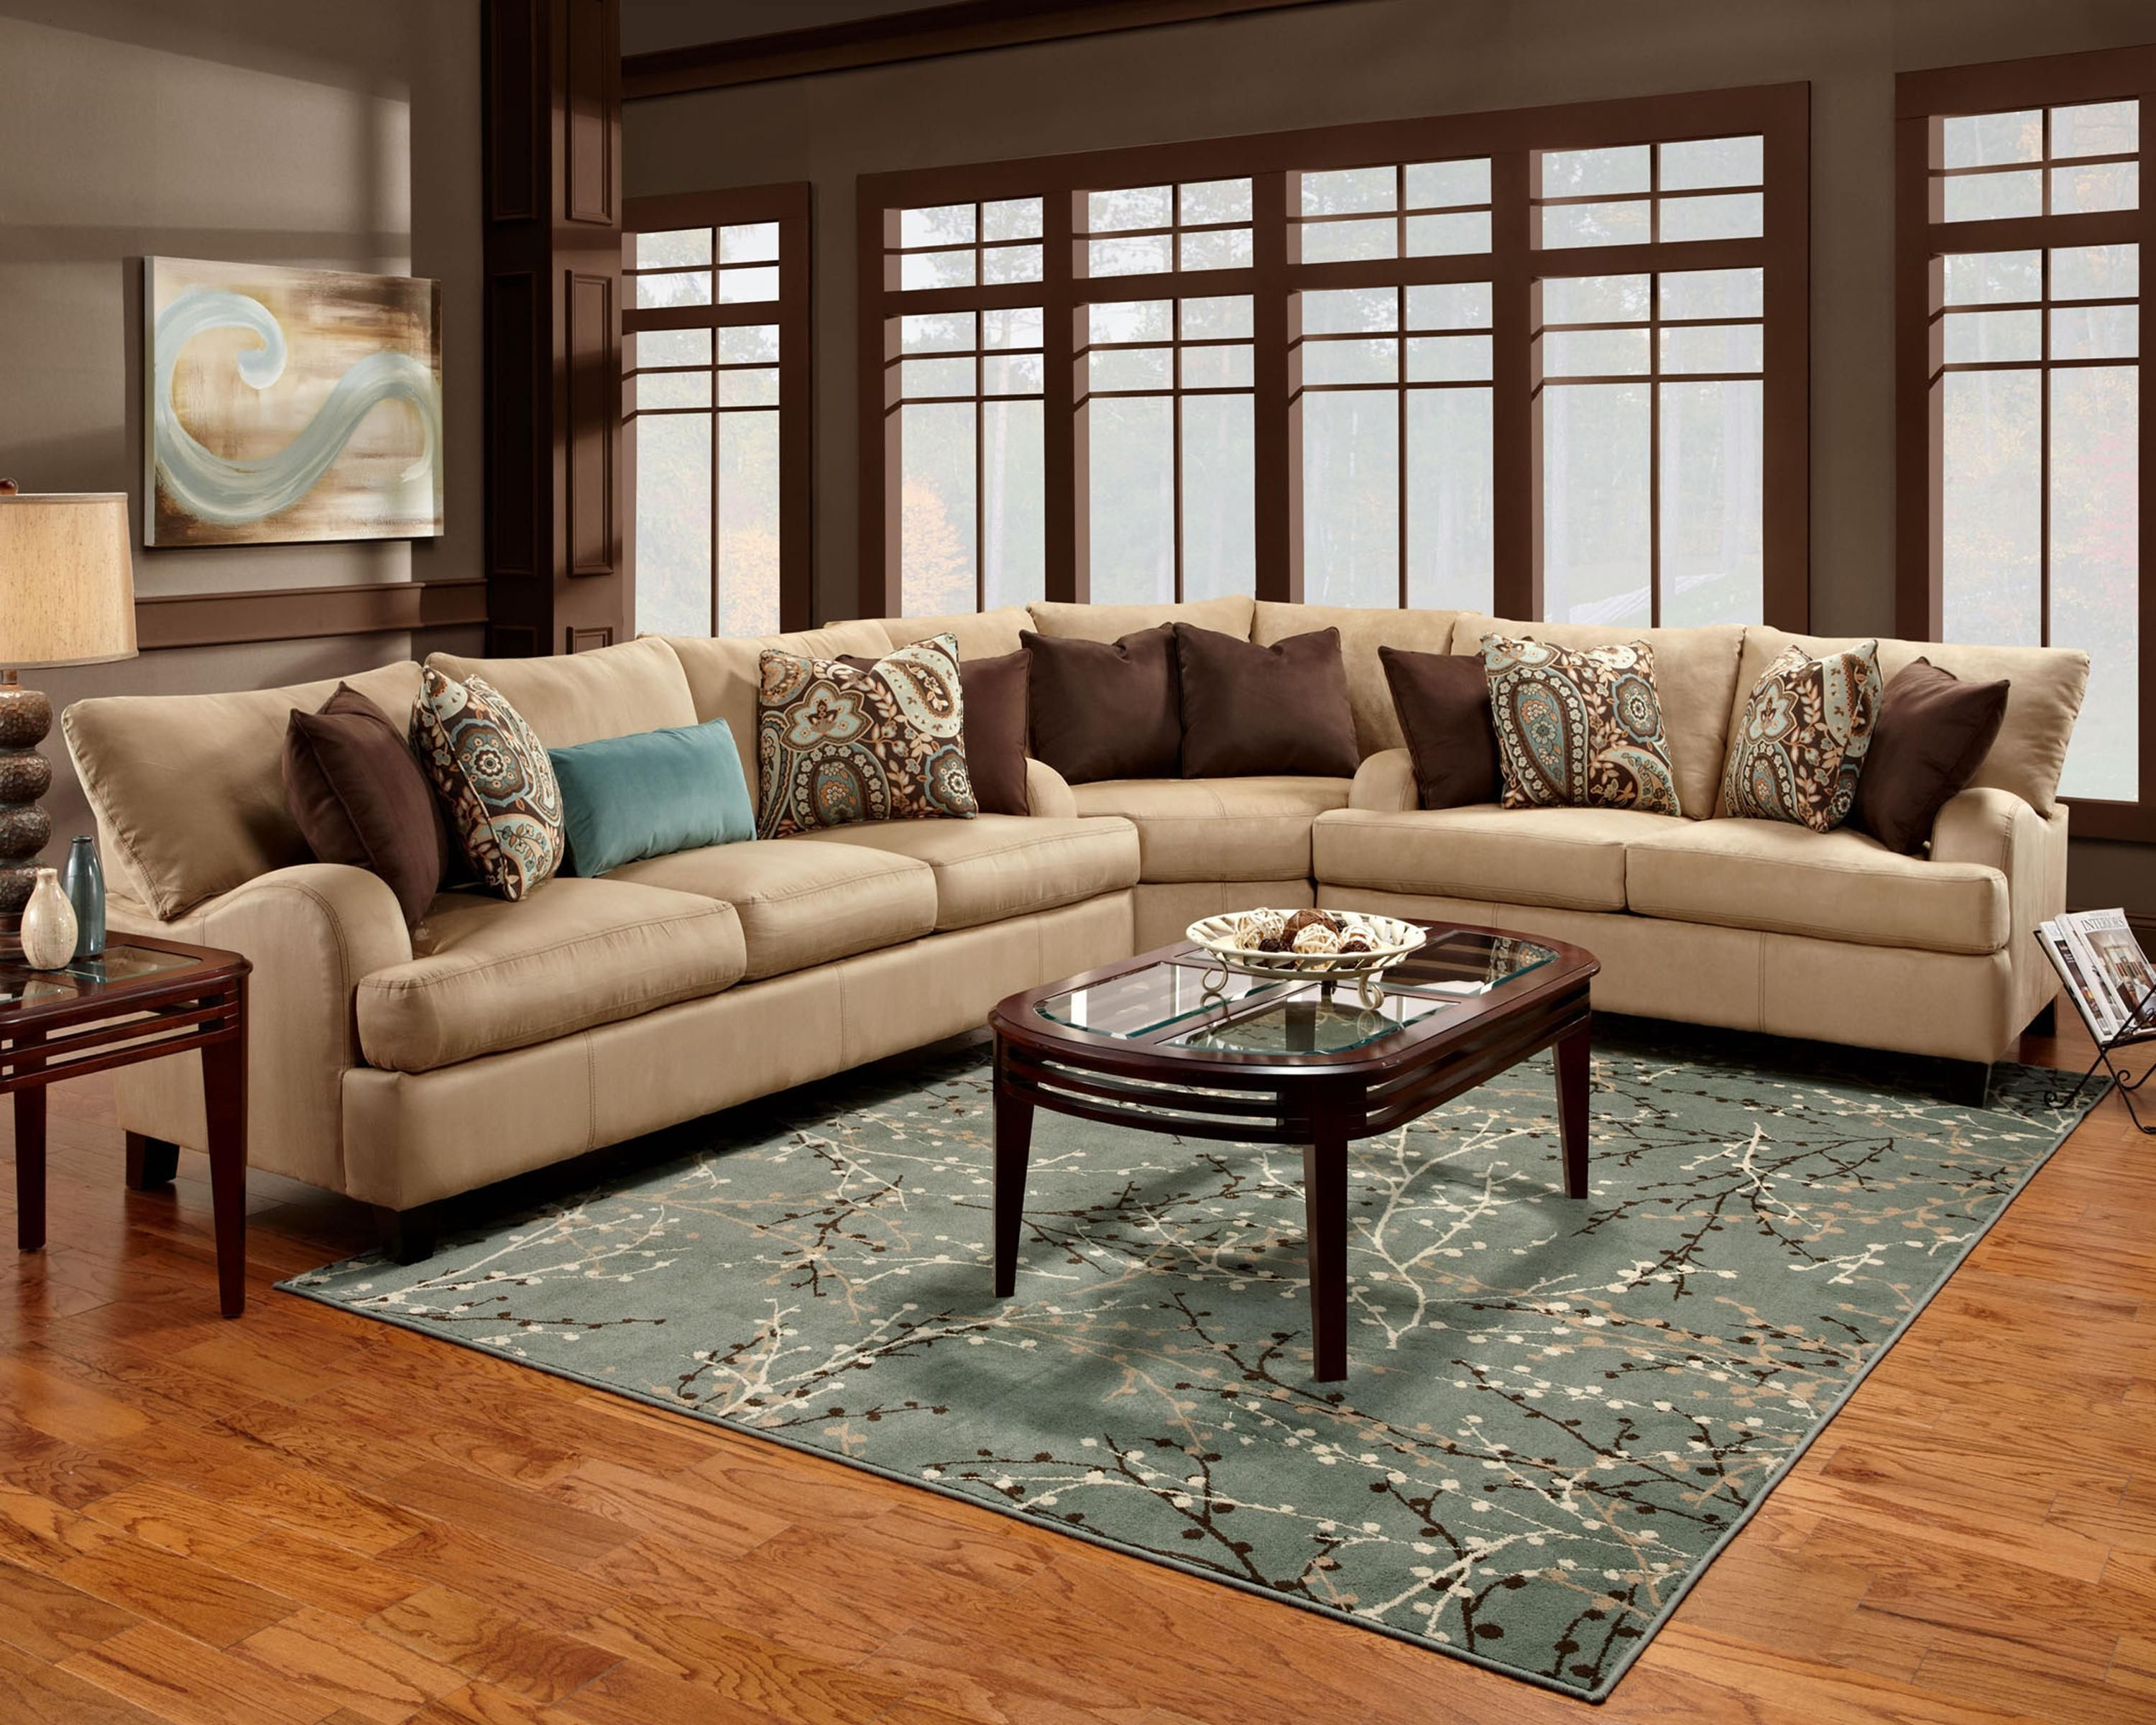 franklin 809 casual 3 piece sectional sofa ahfa sofa sectional rh pinterest com